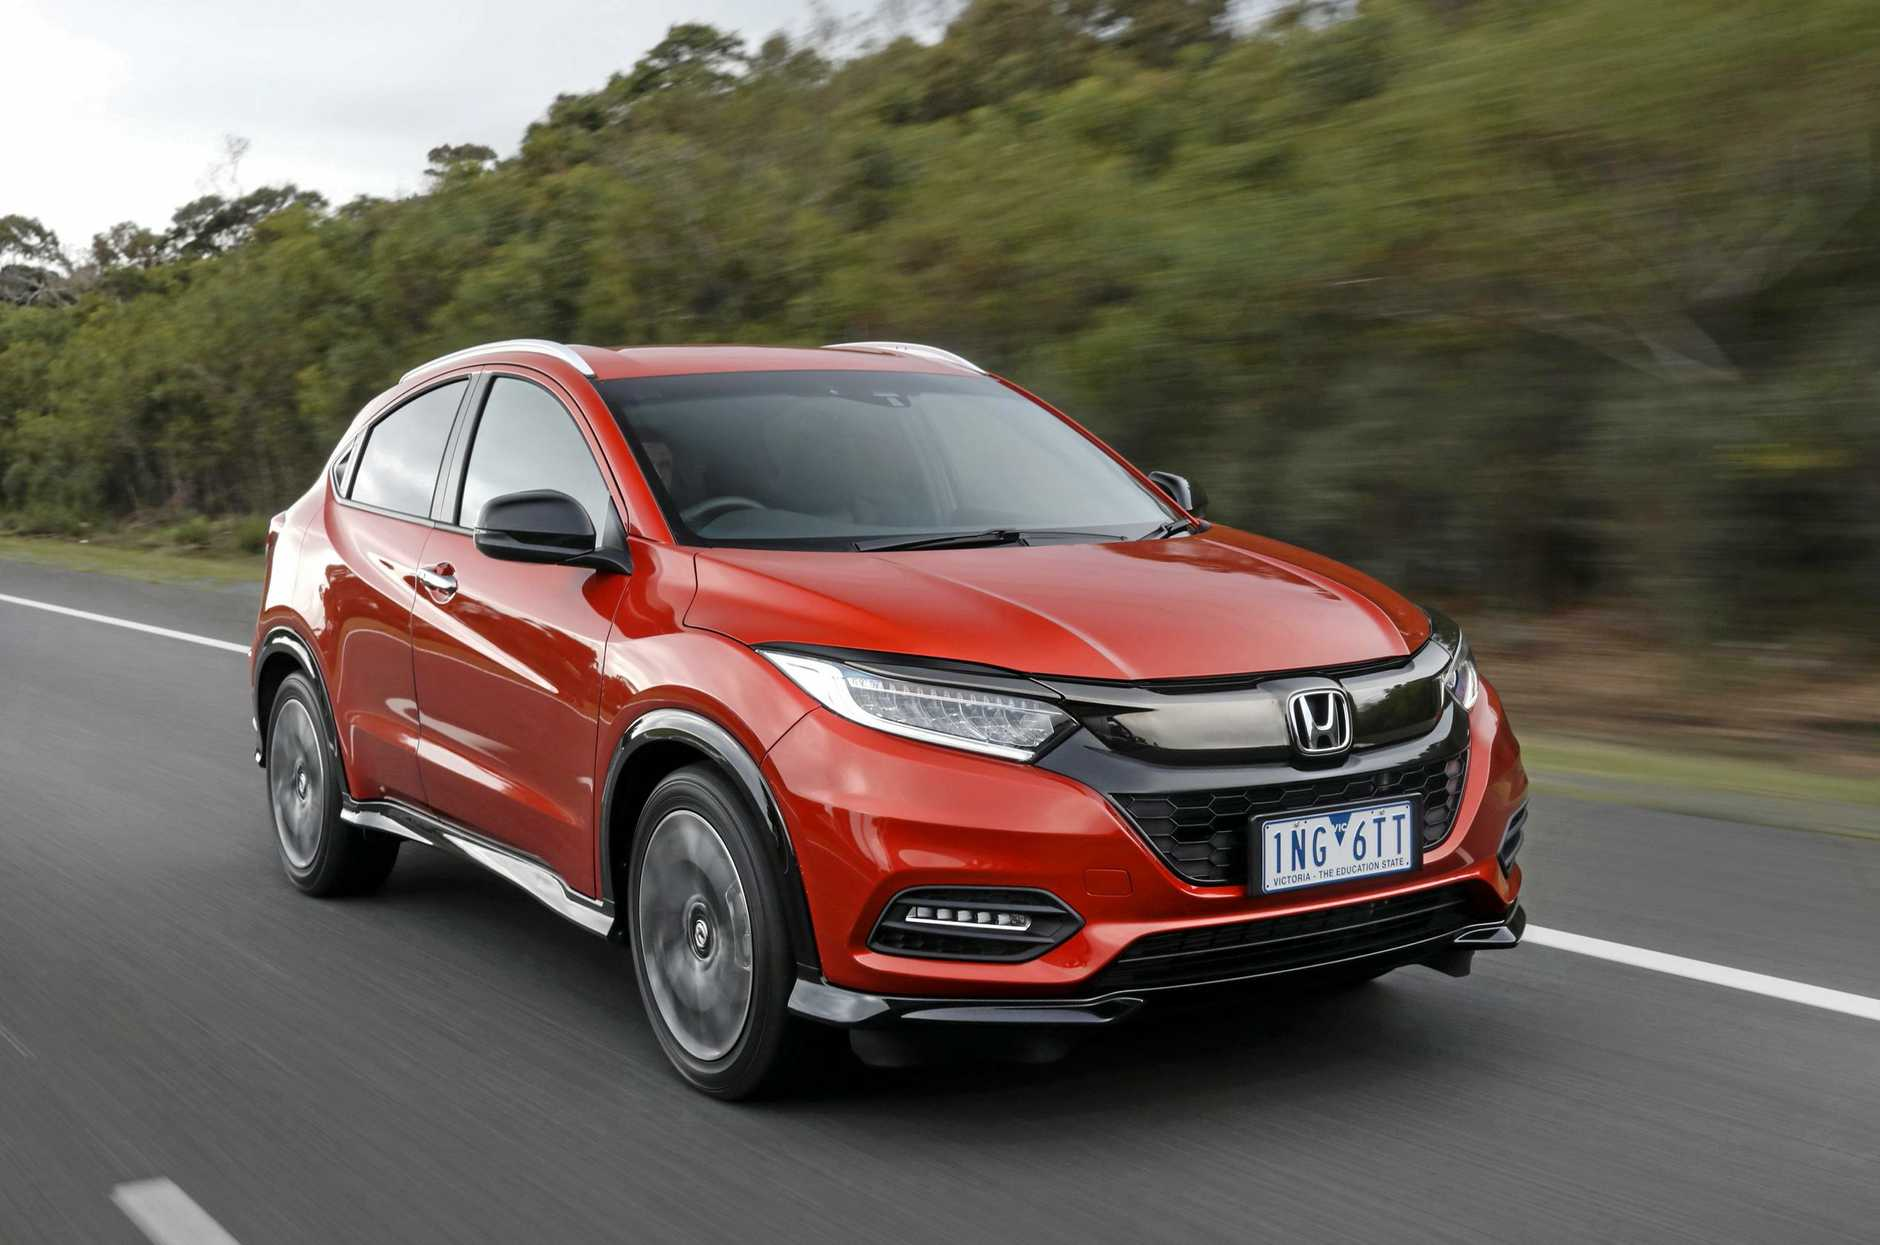 Honda has updated the HR-V for 2018, and introduced the RS model with improved driving dynamics.